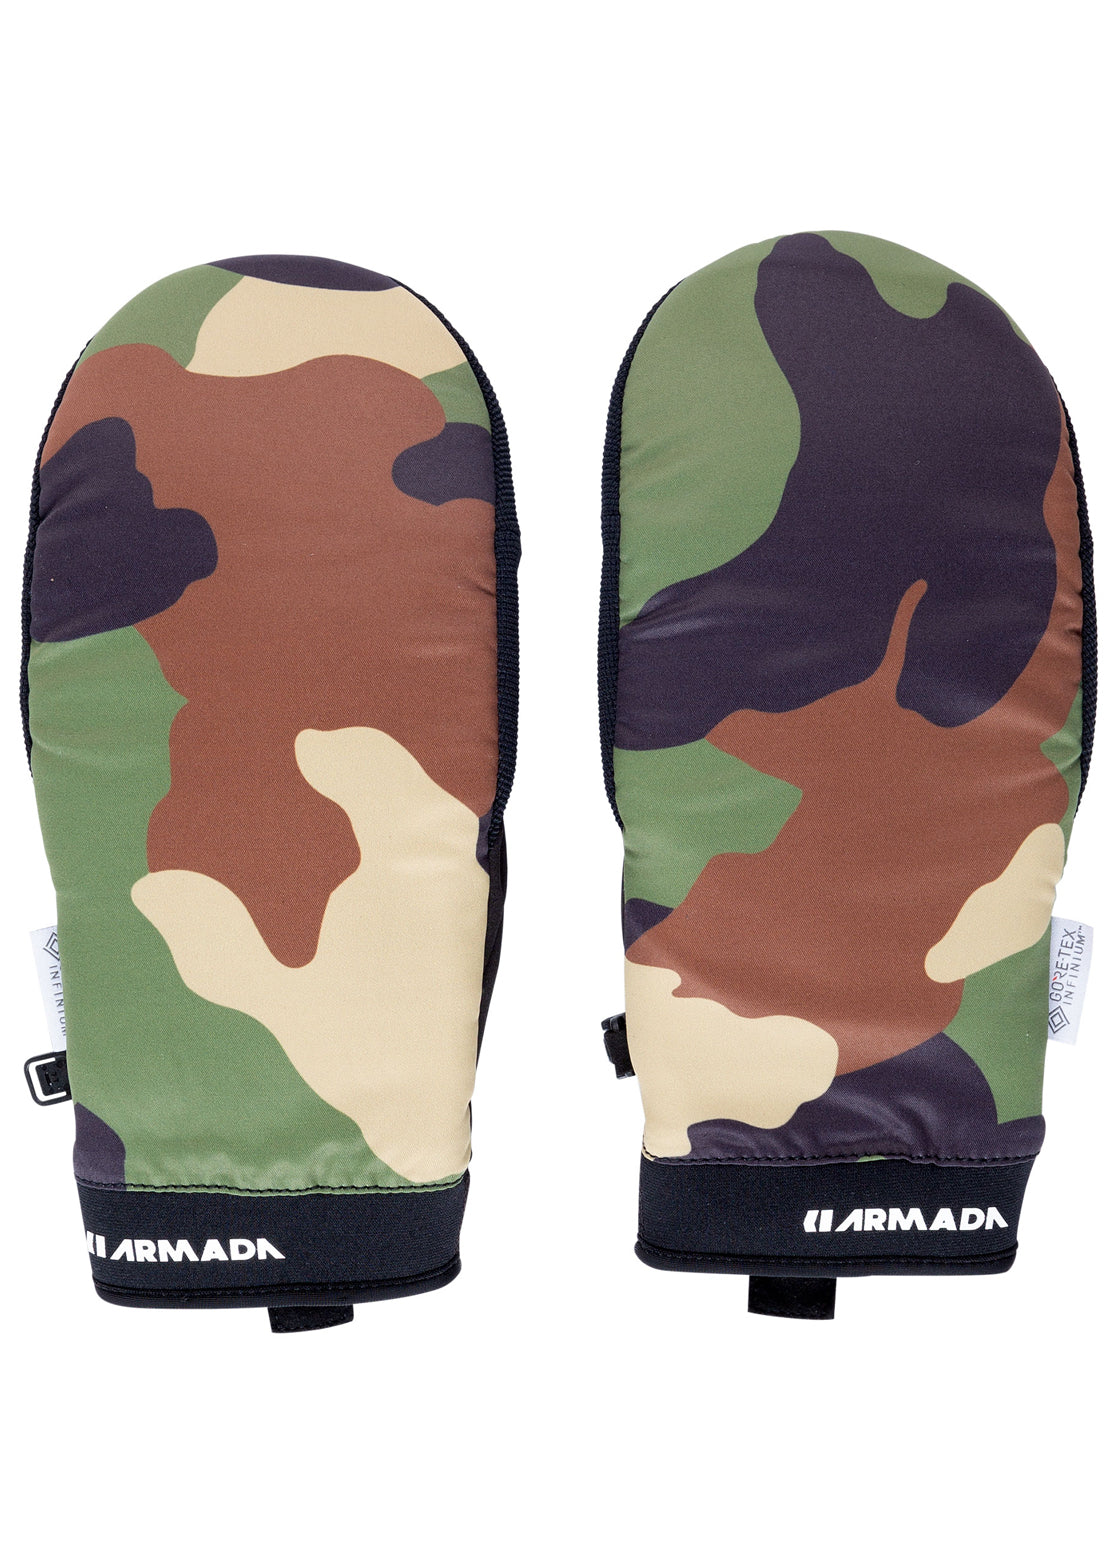 Armada Men's Carmel Windstopper Mitts Camo